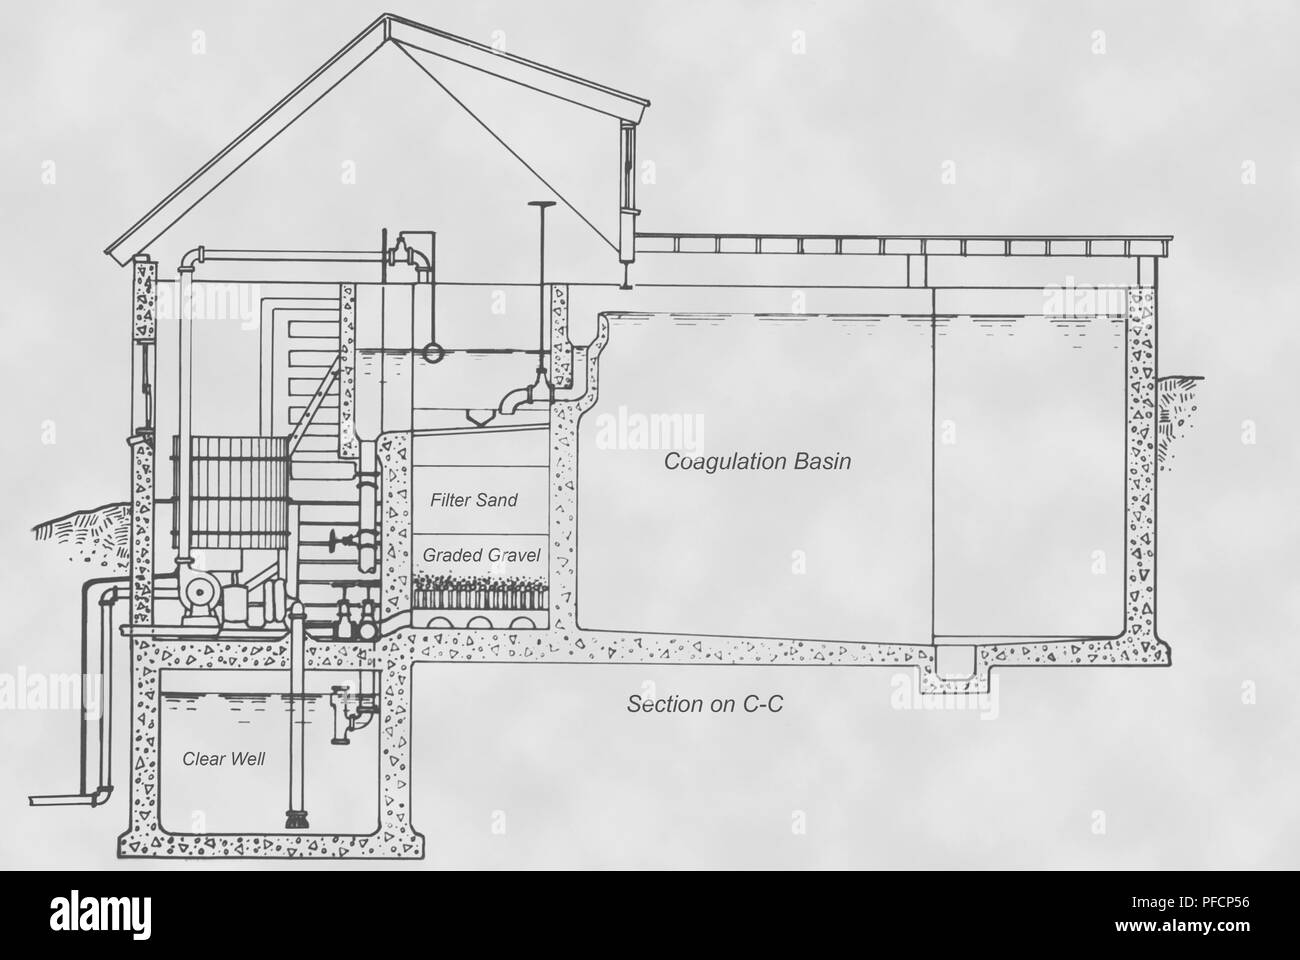 Filtration Black And White Stock Photos Images Alamy Still Diagram Rectifying Plant For Purifying General Configuration Of The Specific Treatment Units A Small Municipal Water Digitally